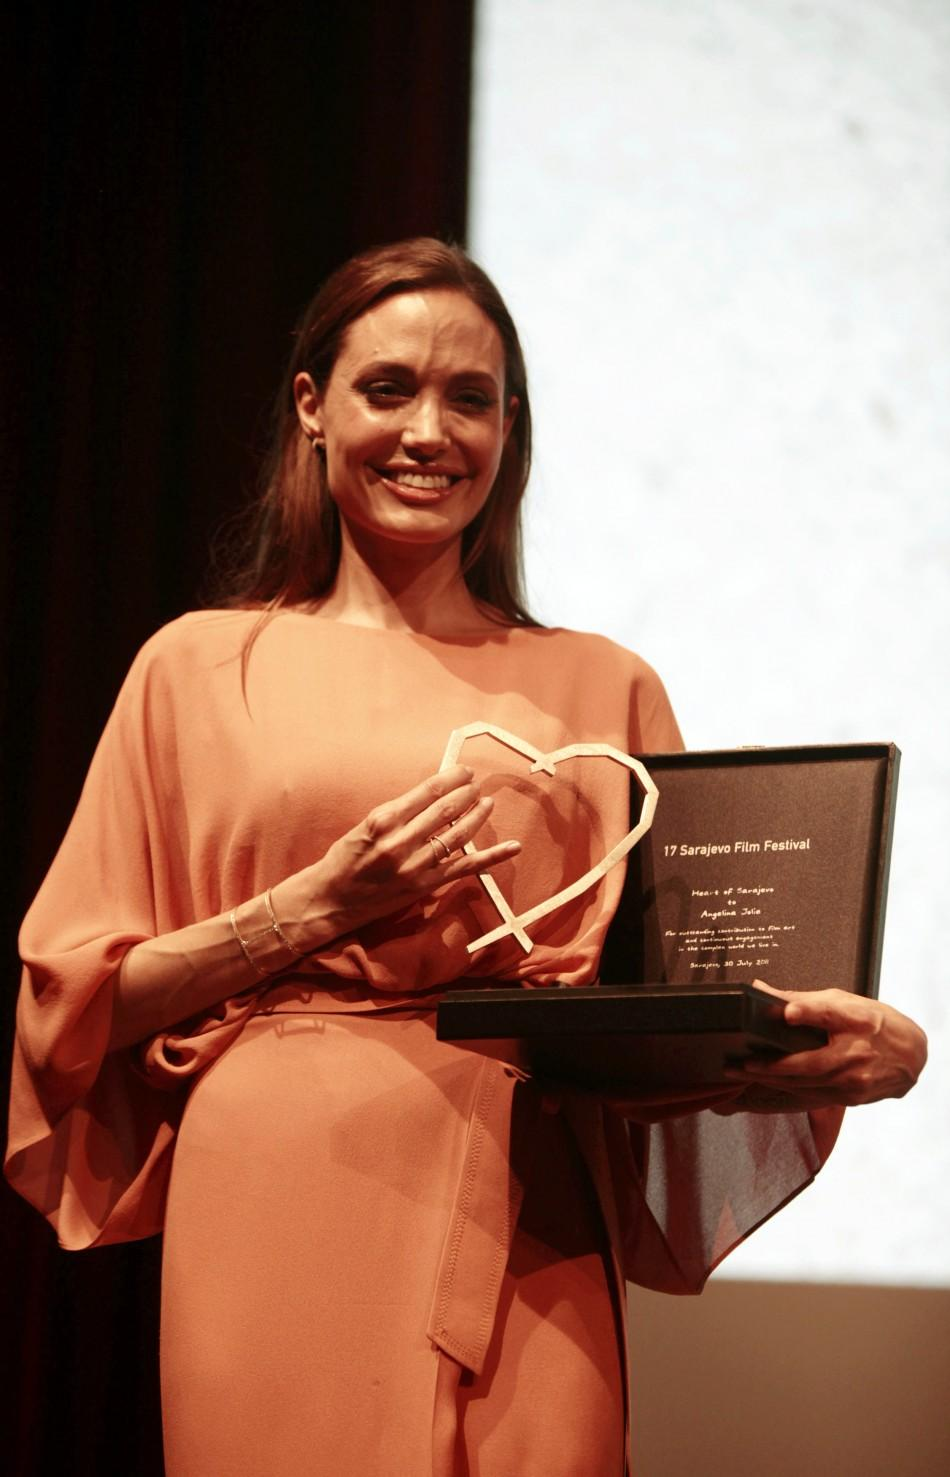 Angelina Jolie poses with the Heart of Sarajevo honorary award on the final night of the 17th Sarajevo Film Festival